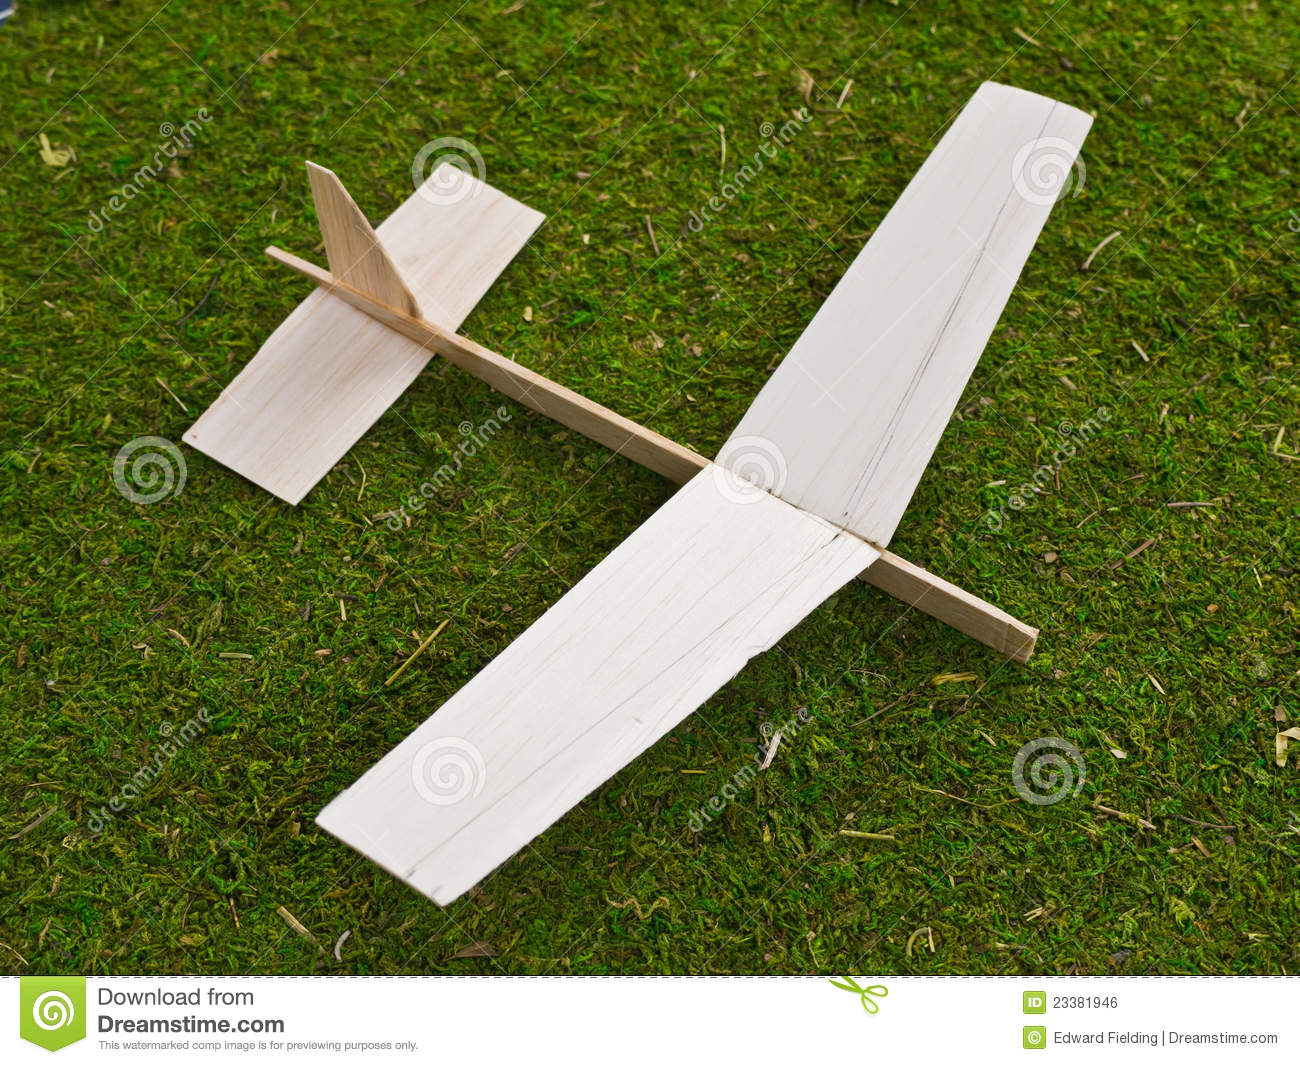 make toy plane at home with Royalty Vrije Stock Afbeelding Het Zweefvliegtuig Van Het Stuk Speelgoed Image23381946 on My Mystery Ufo as well Watch additionally Air Cargo Concept Cartoon Toy Jet Airplane Free Shipping S further Aereo Civile Funny Airplane Squiggly Svg likewise Postman Pat Friction Van 2713283.